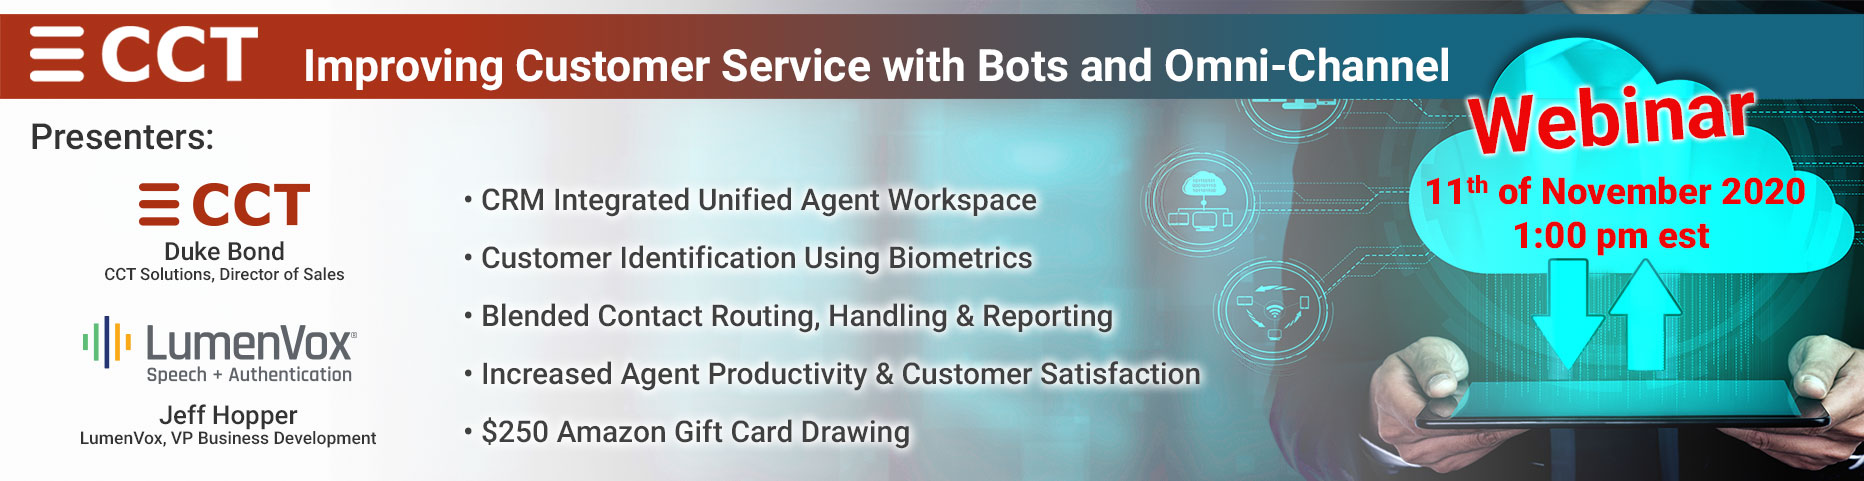 Improving Customer Service with Bots and Omni-Channel